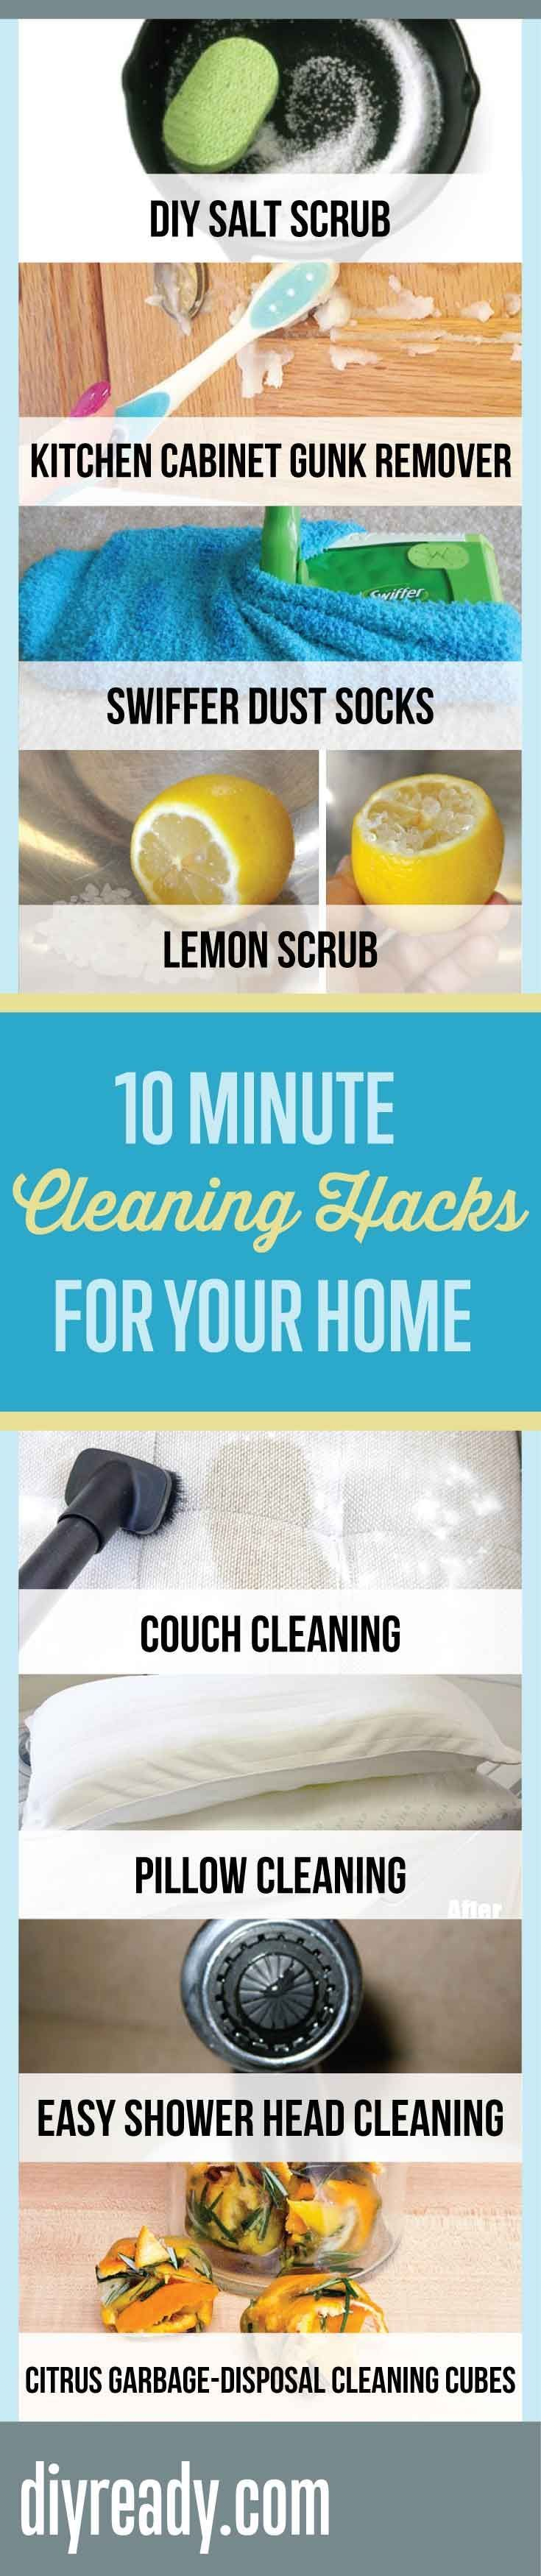 493 best Cleaning images on Pinterest | Cleaning hacks, Cleaning ...